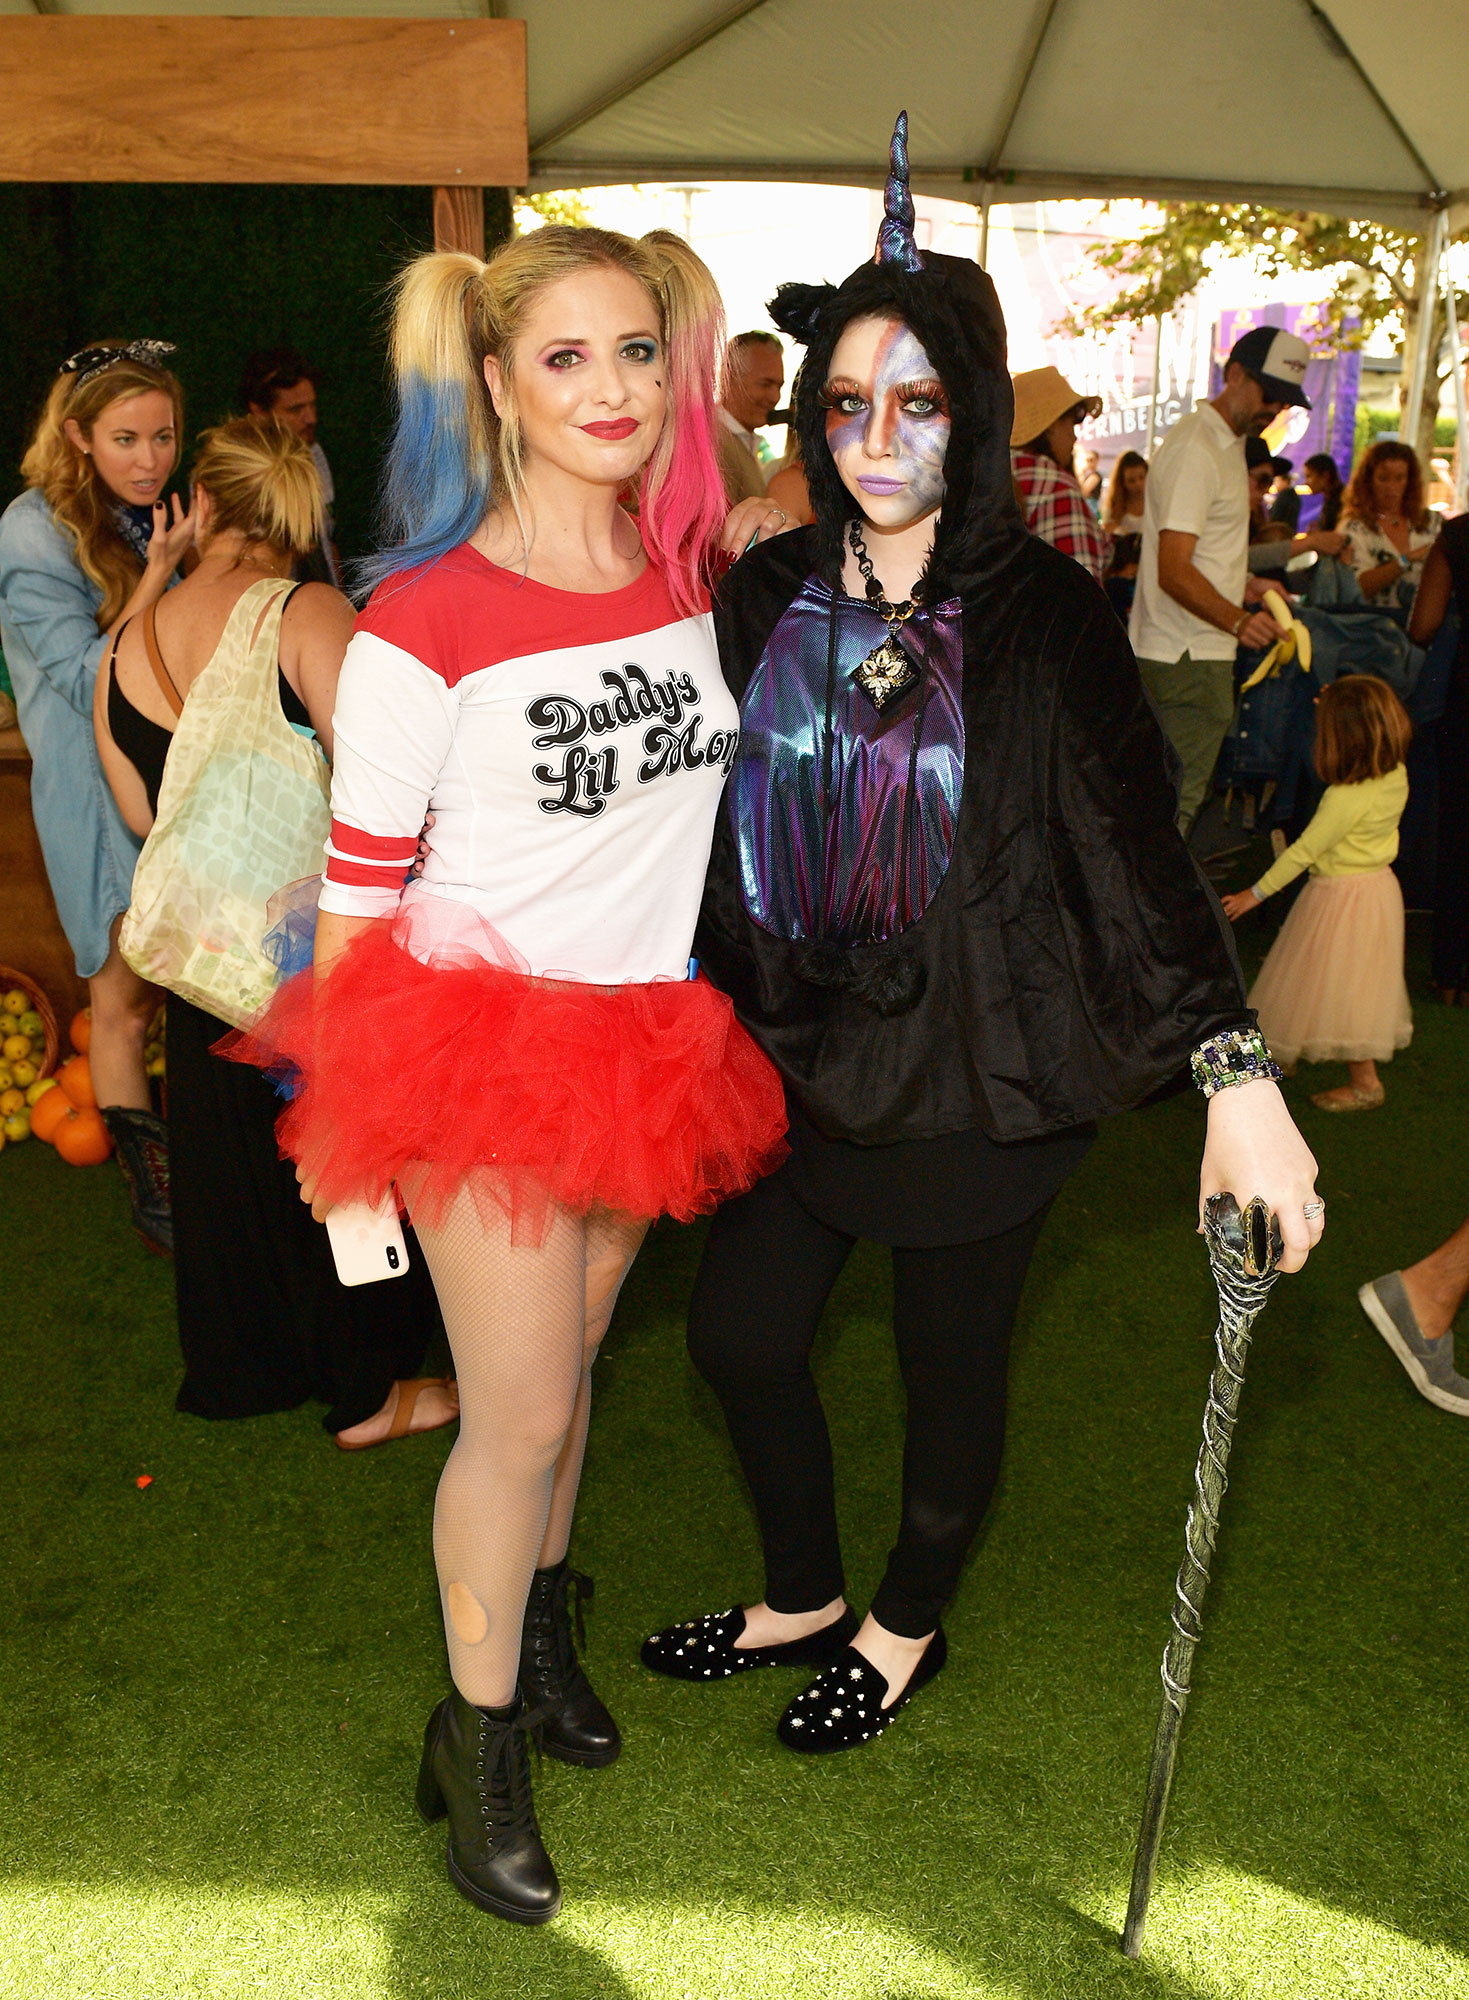 Sarah Michelle Gellar Michelle Trachtenberg - Sarah Michelle Gellar (L) and Michelle Trachtenberg attend the 2018 GOOD+ Foundation's 3rd Annual Halloween Bash presented by Delta Air Lines and Otter Pops on October 28, 2018 in Culver City, California.